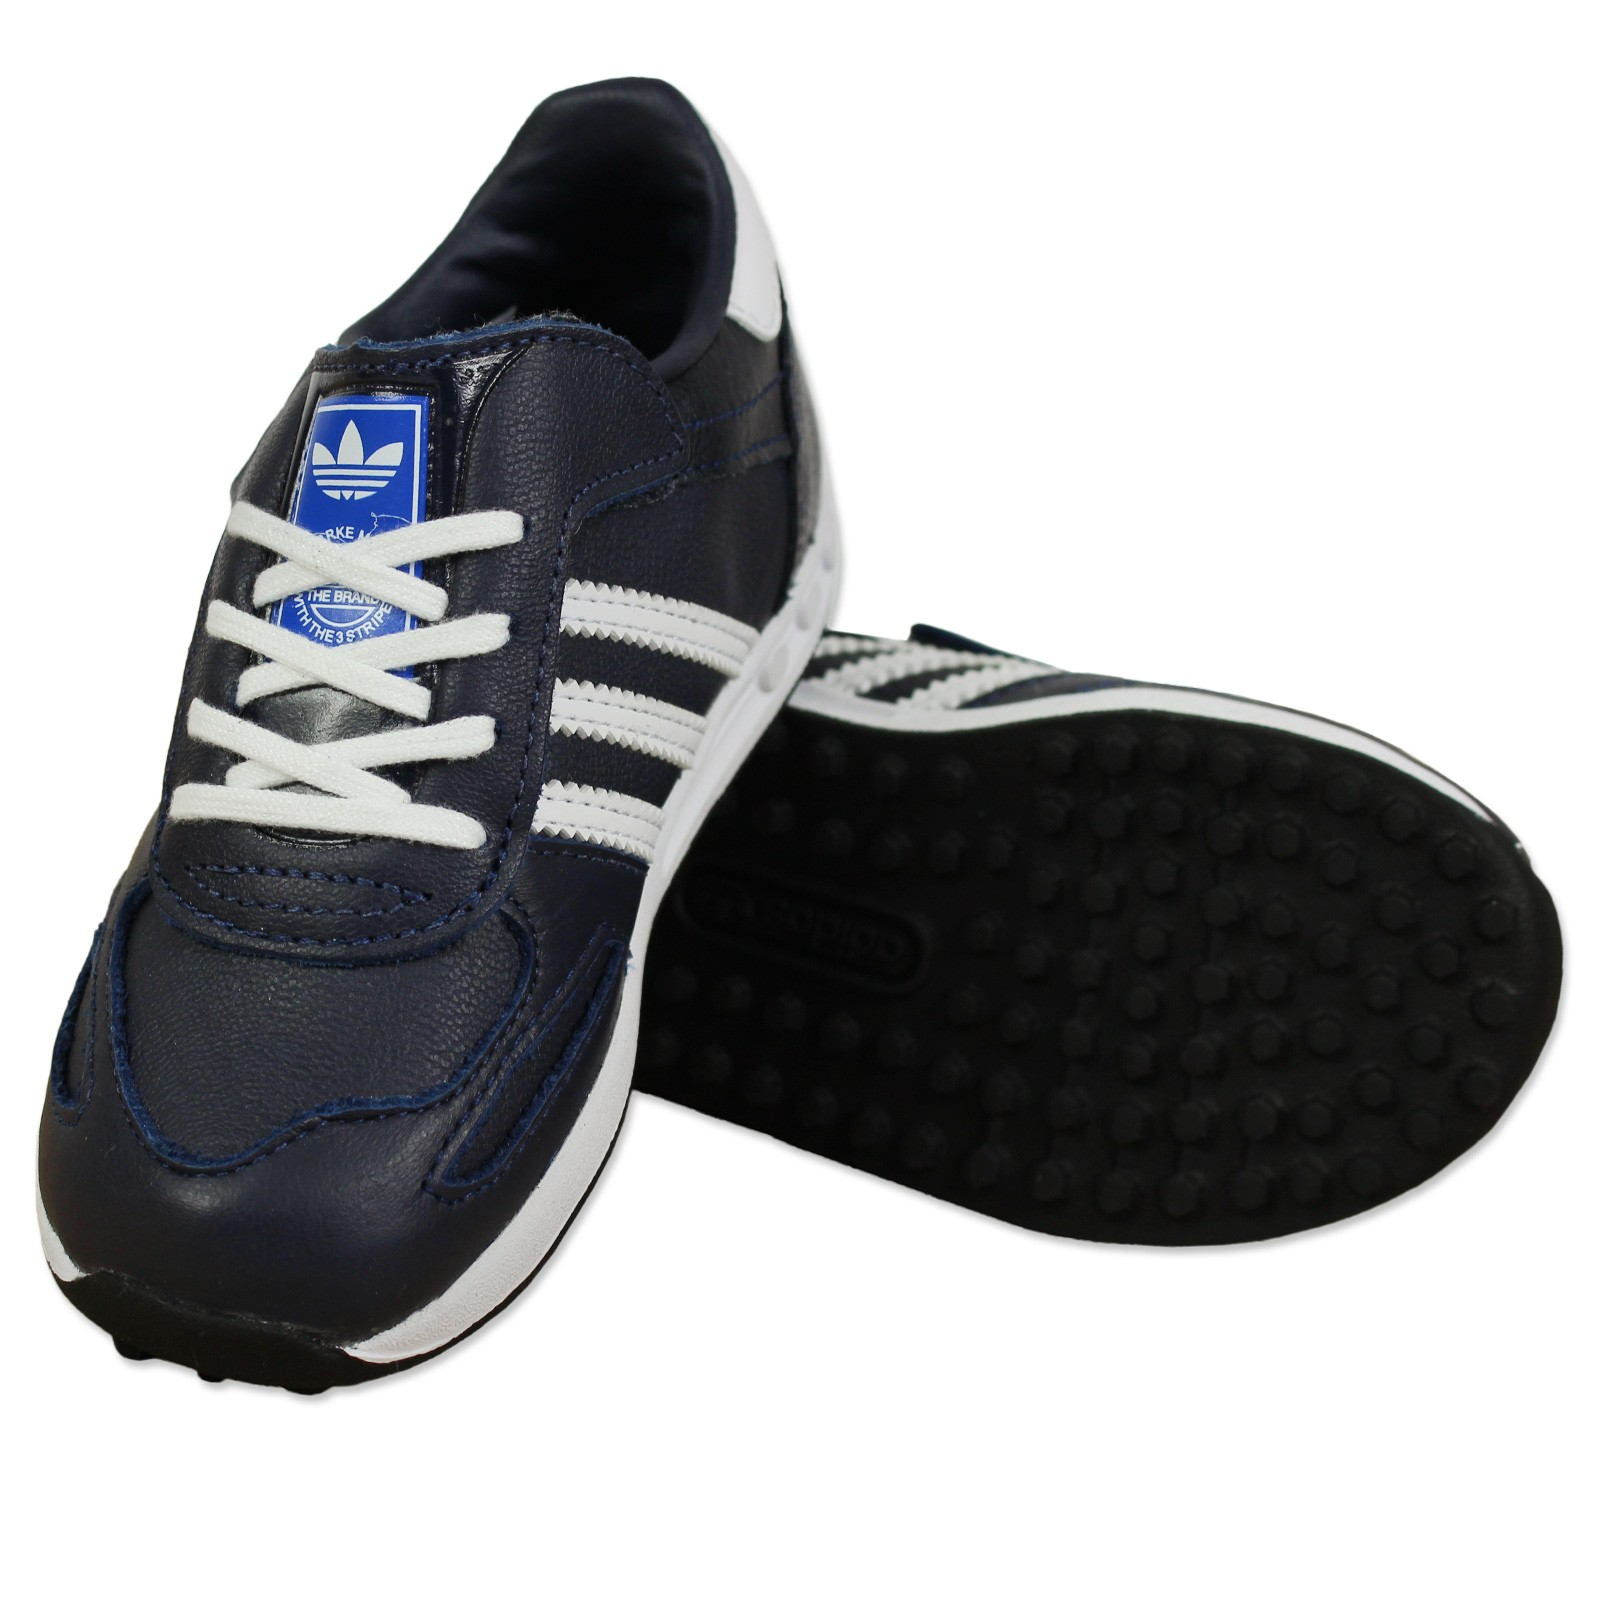 adidas originals la trainer kinder sneaker schuhe legink blau weiss leder kinder schuhe. Black Bedroom Furniture Sets. Home Design Ideas